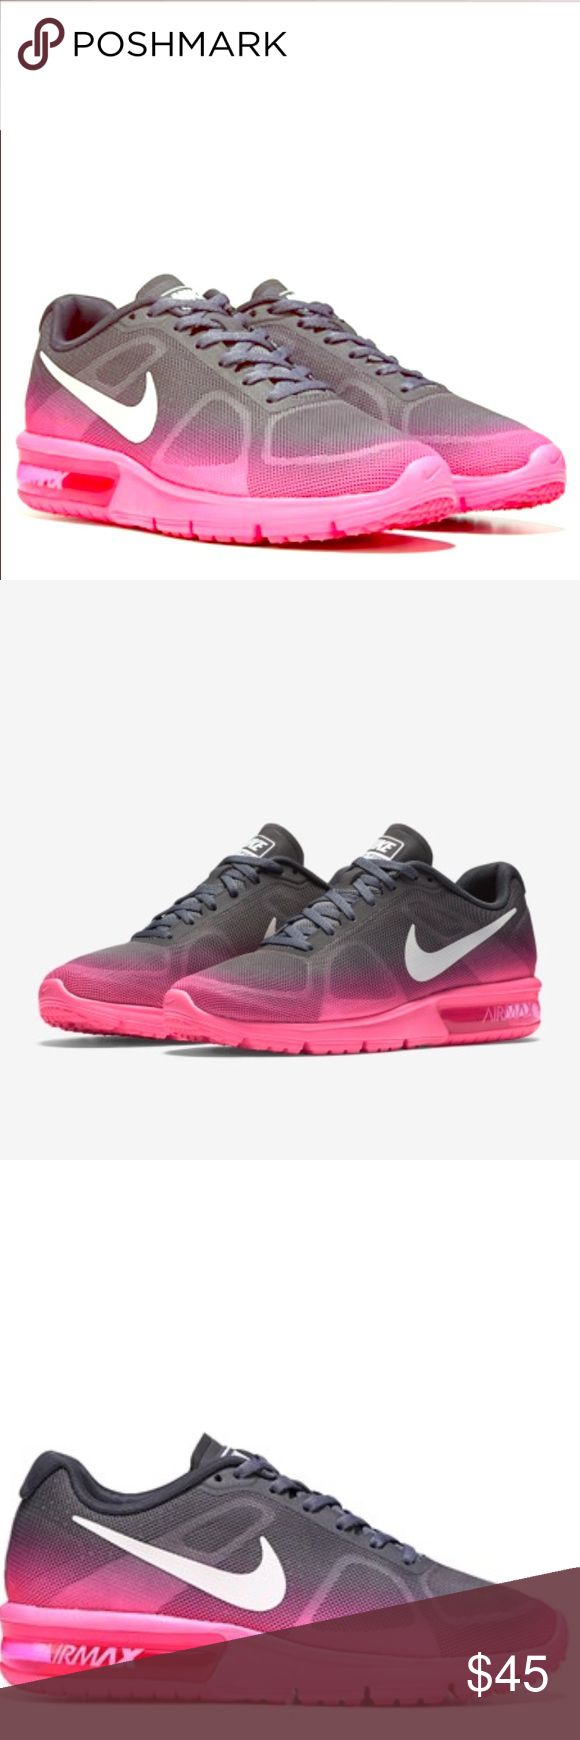 Nike Air Max Sequent Women Running shoes